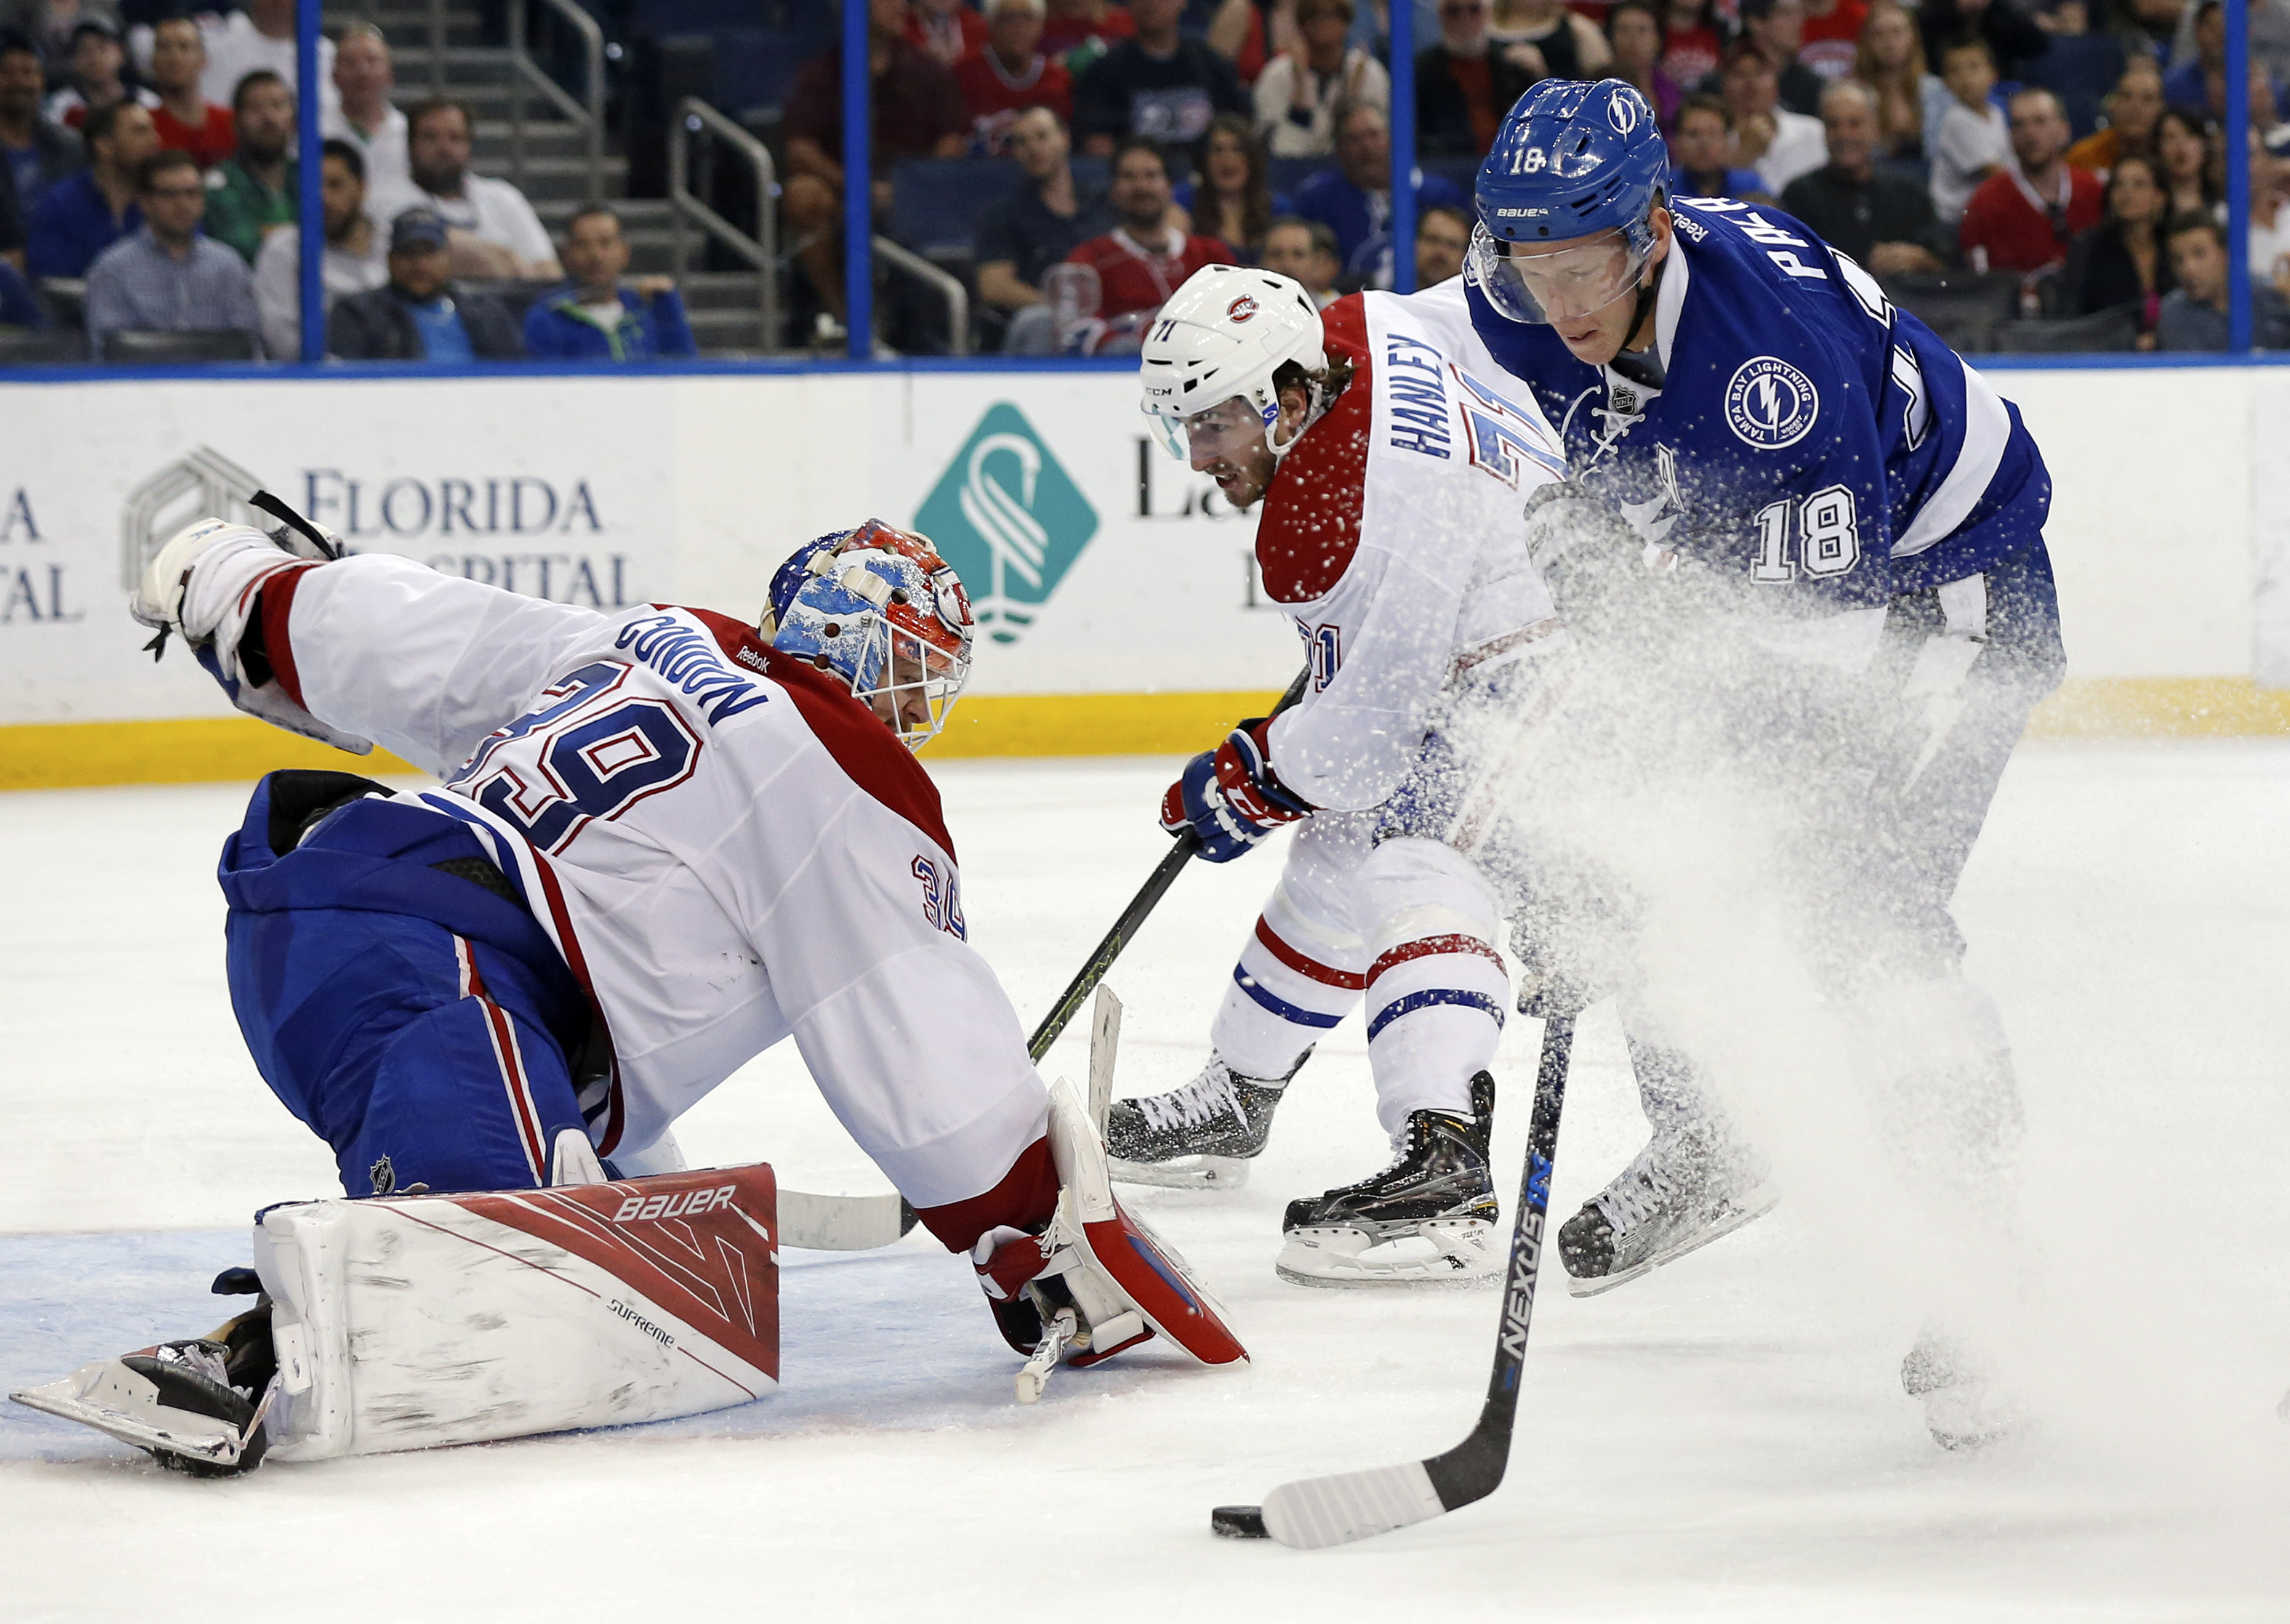 Tampa Bay Lightning's Ondrej Palat (18), of the Czech Republic, shoots on Montreal Canadiens goalie Mike Condon as Joel Hanley defends during the second period of an NHL hockey game Thursday, March 31, 2016, in Tampa, Fla. Palat was hooked by Hanley on th